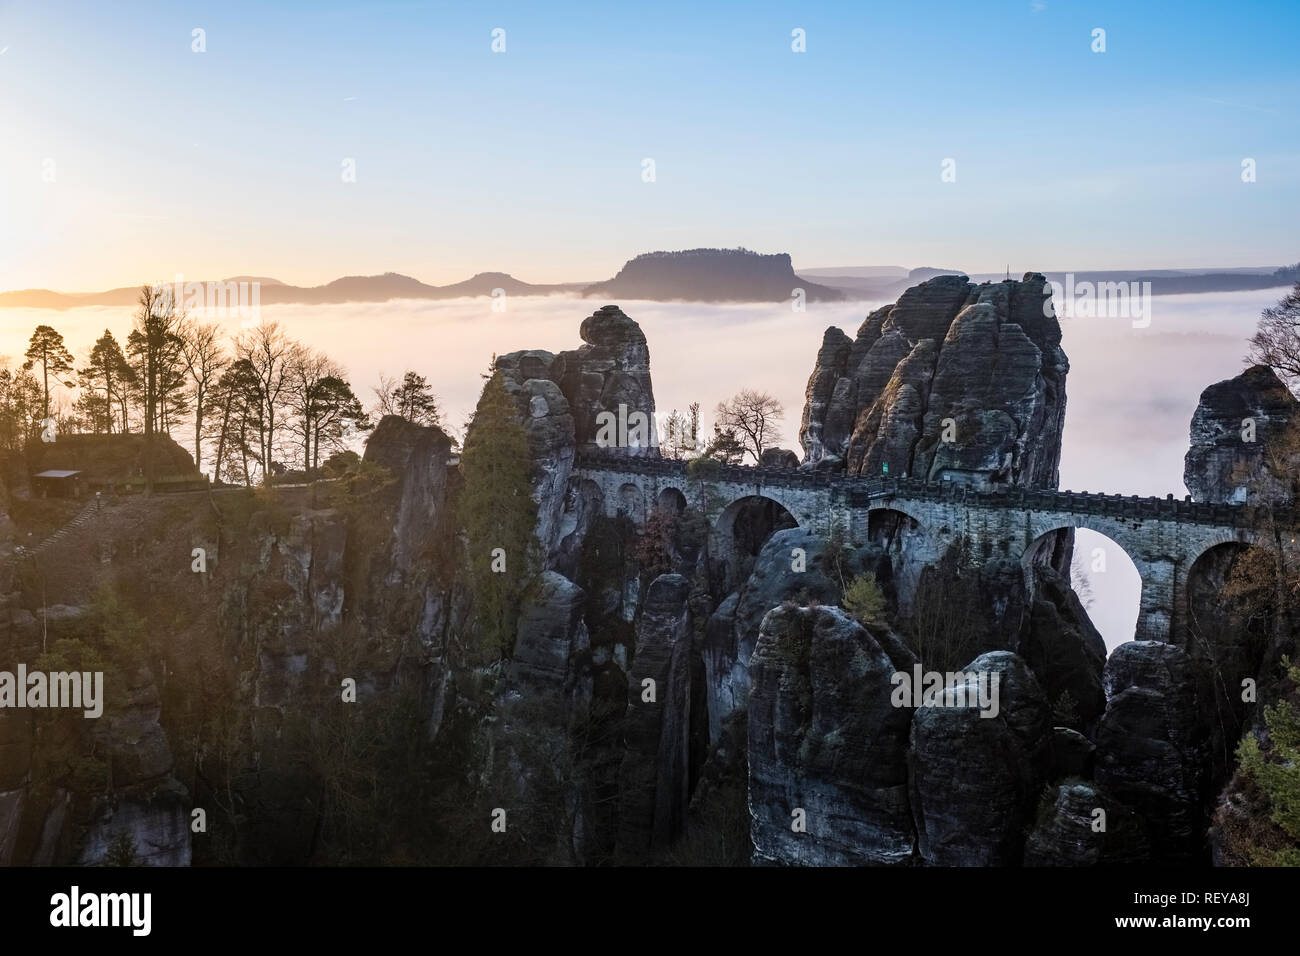 Landscape in the National Park Sächsische Schweiz with rock formations, Bastei bridge and trees, fog in the river Elbe valley at sunrise - Stock Image